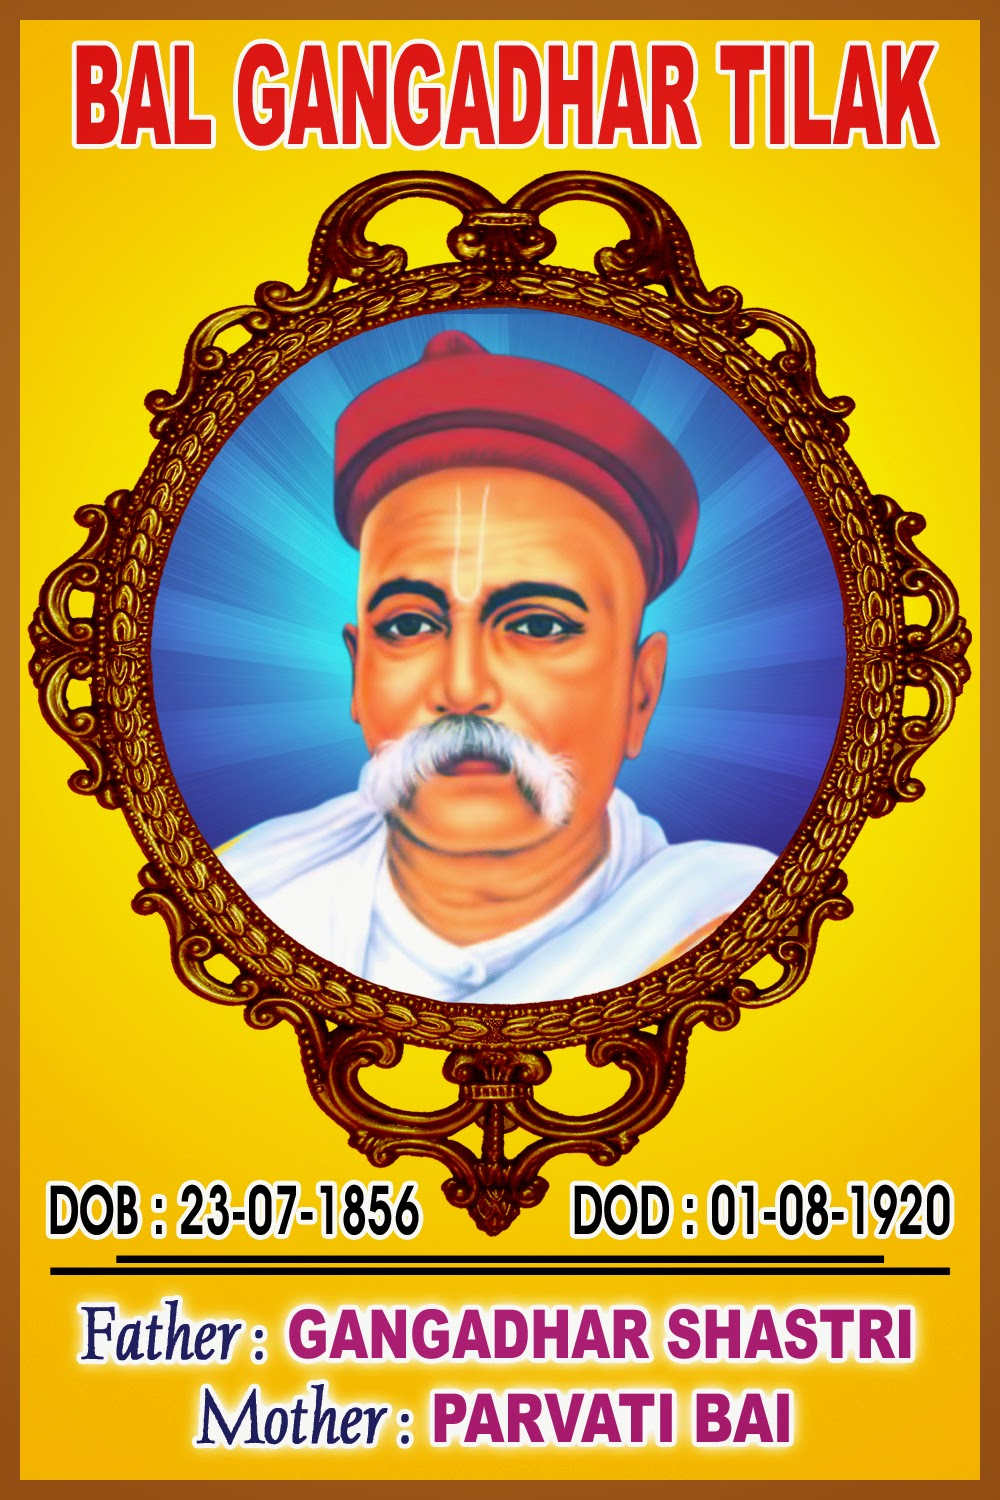 freedom-fighter-bal-gangadhar-tilak-image-with-names-naveengfx.com